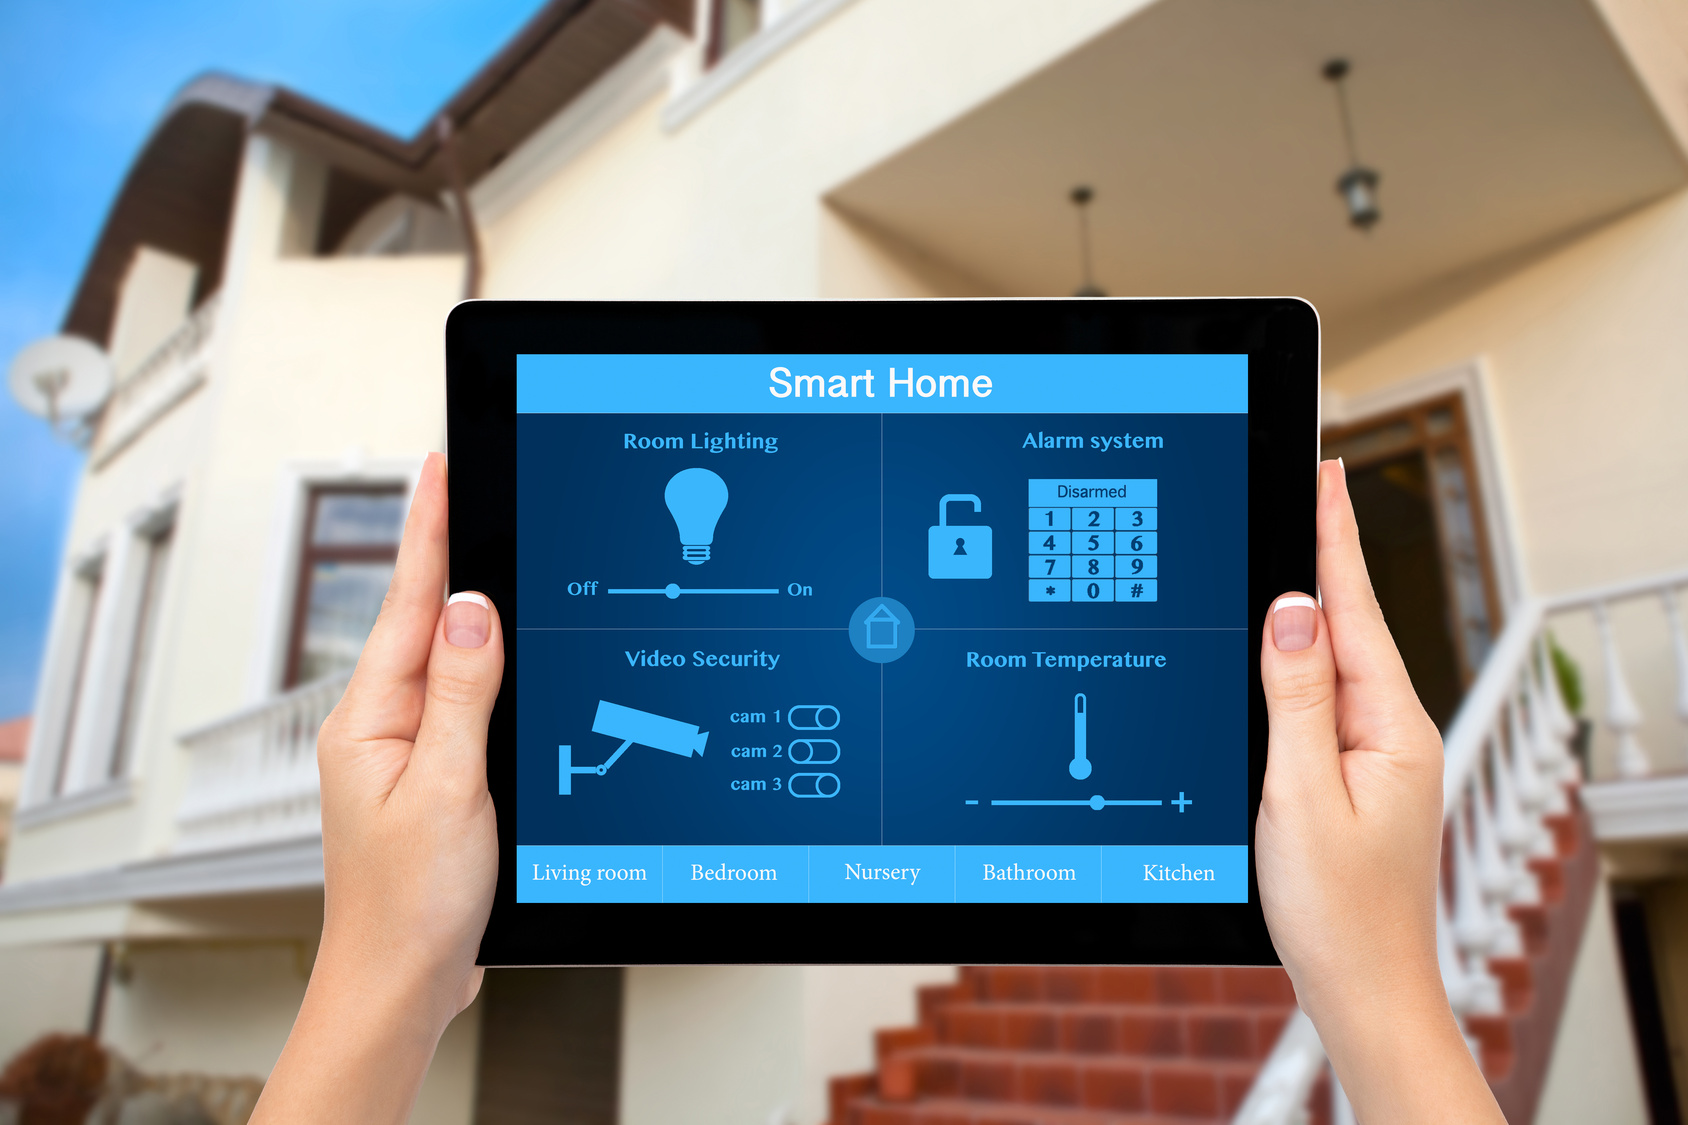 Smart home solutions